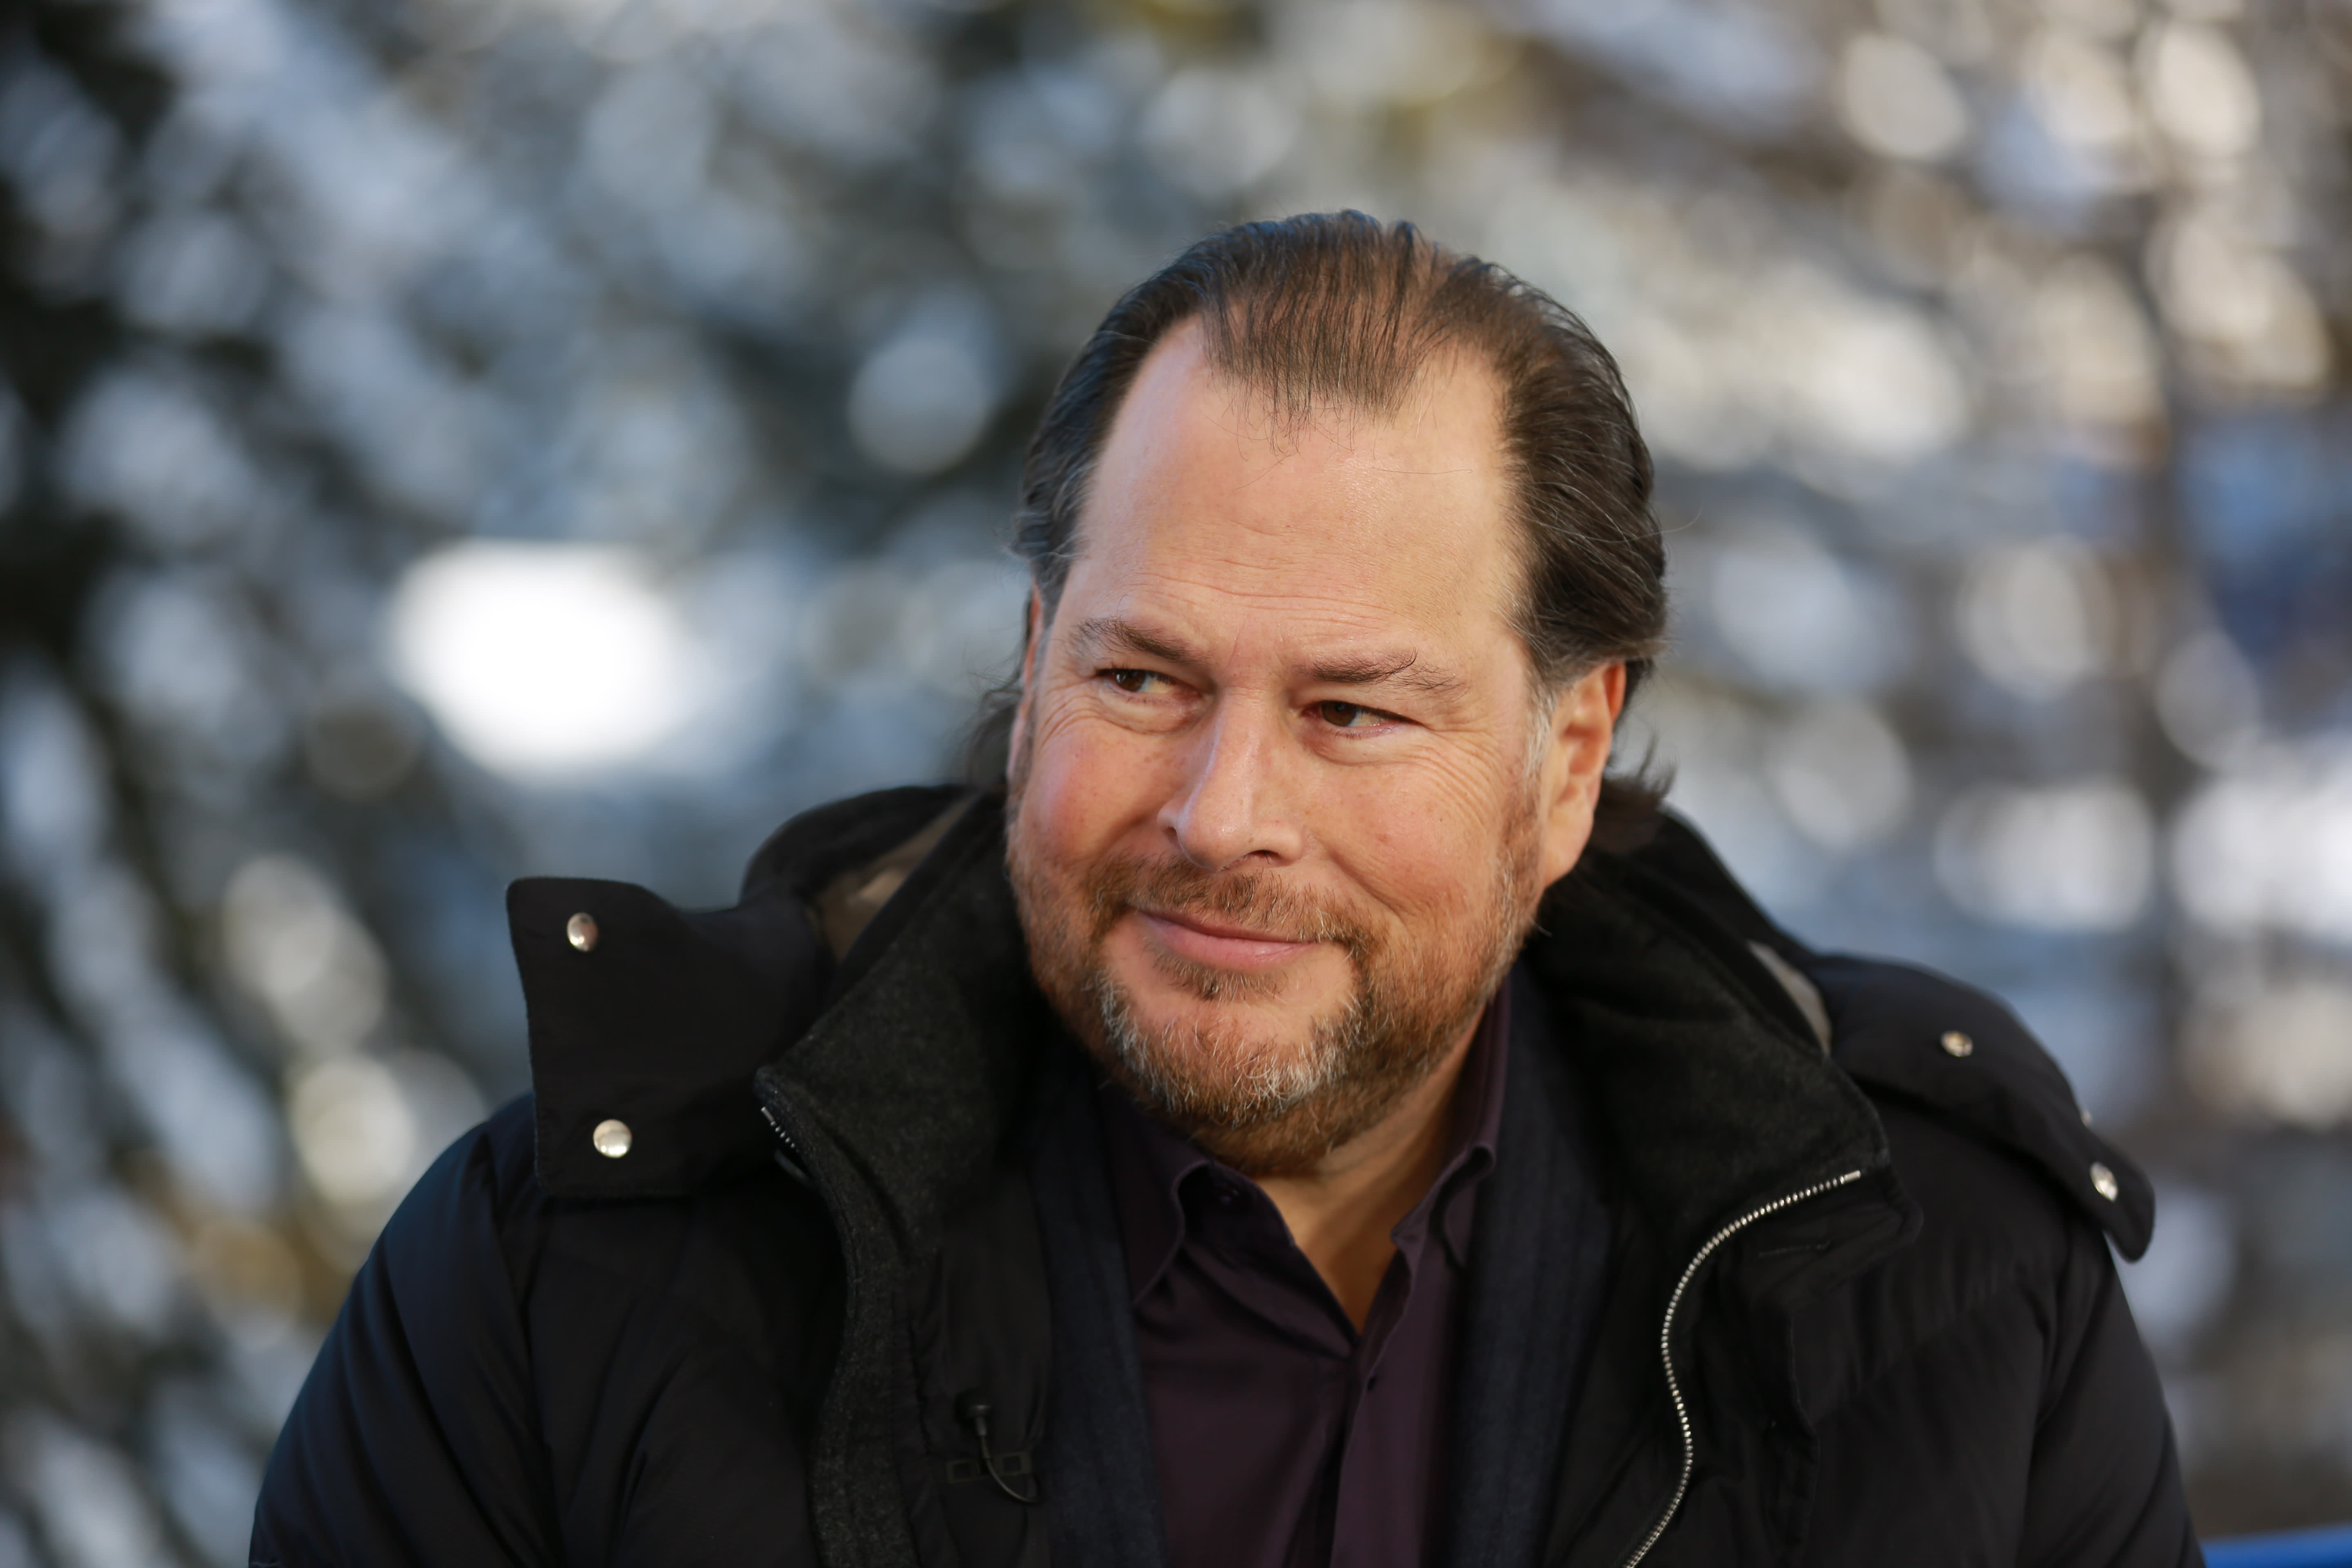 Salesforce's Marc Benioff calls for a 'new capitalism' where billionaires pay higher taxes